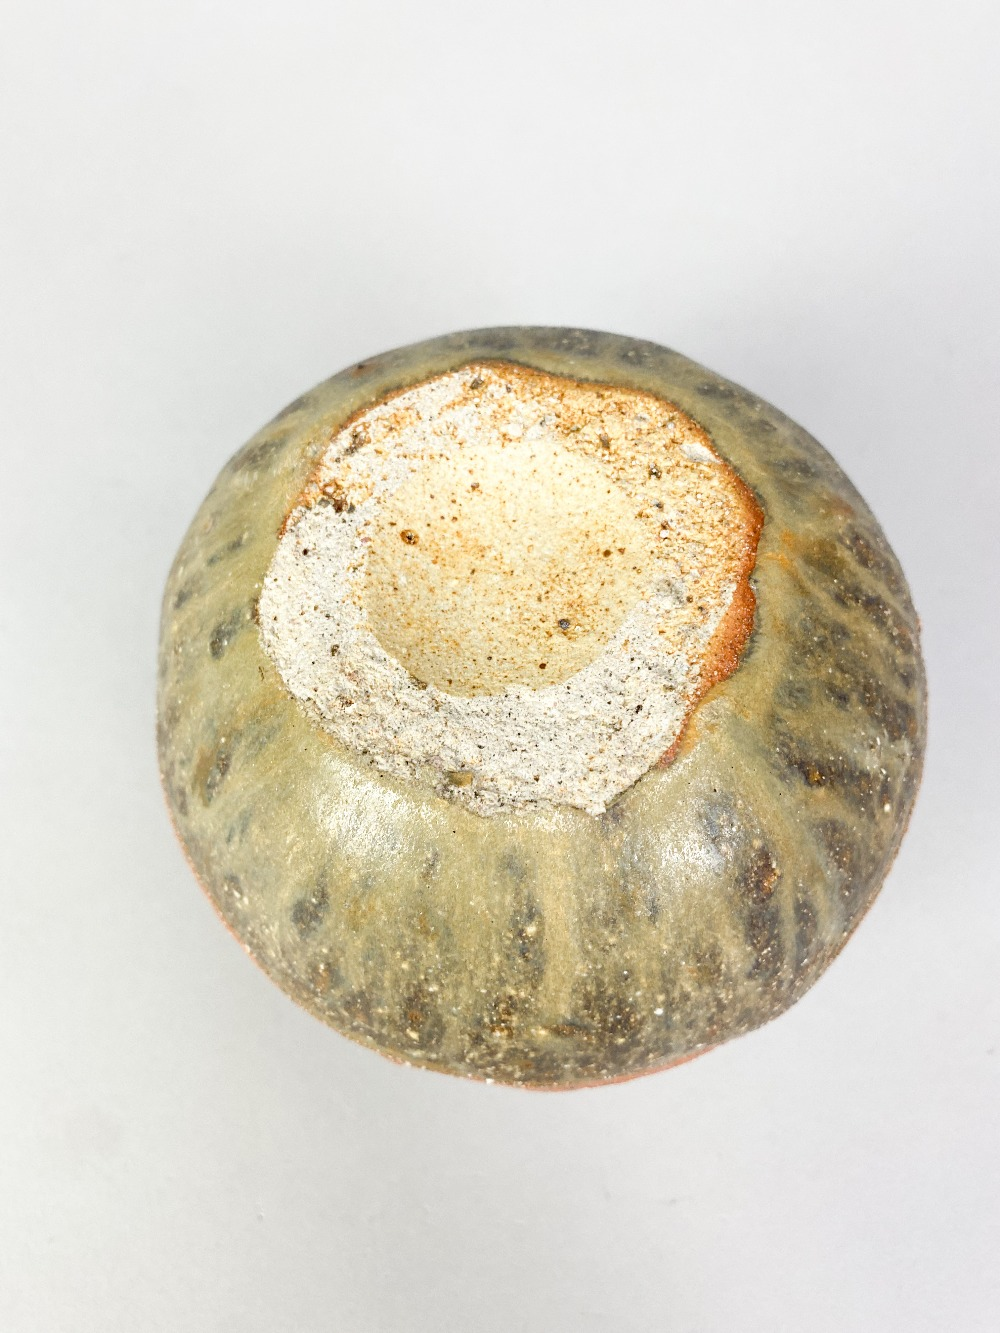 BERNARD ROOKE (born 1938); a small round stoneware pot with incised decoration, made 1960s, height - Image 4 of 4